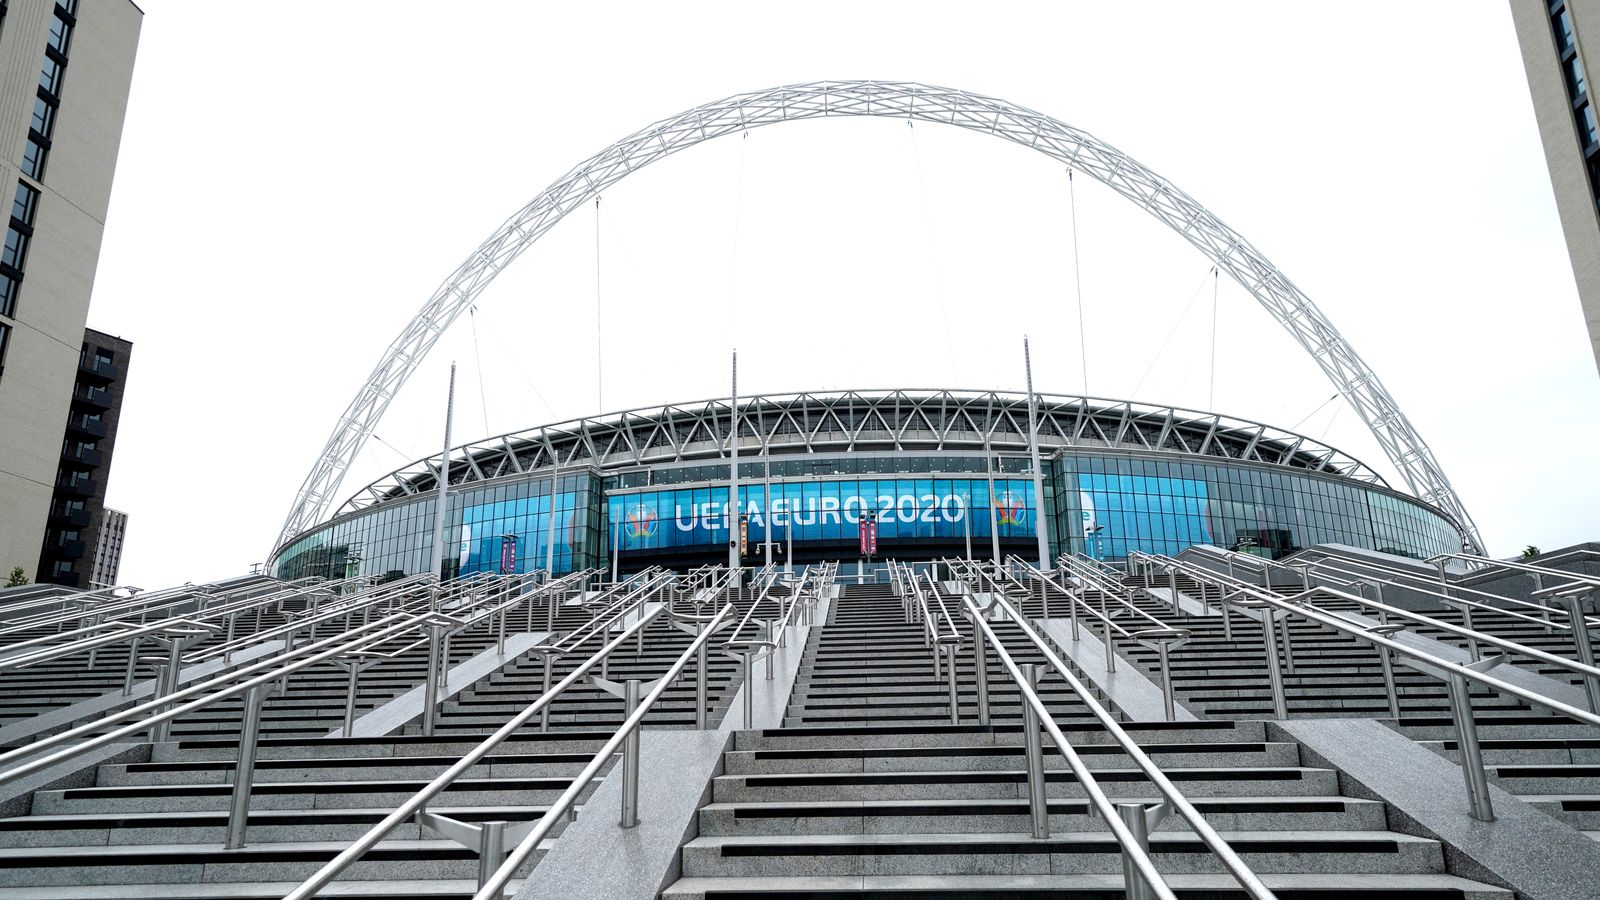 Wembley pilot events: Eight positive coronavirus cases recorded among fans who attended FA Cup and Carabao Cup matches